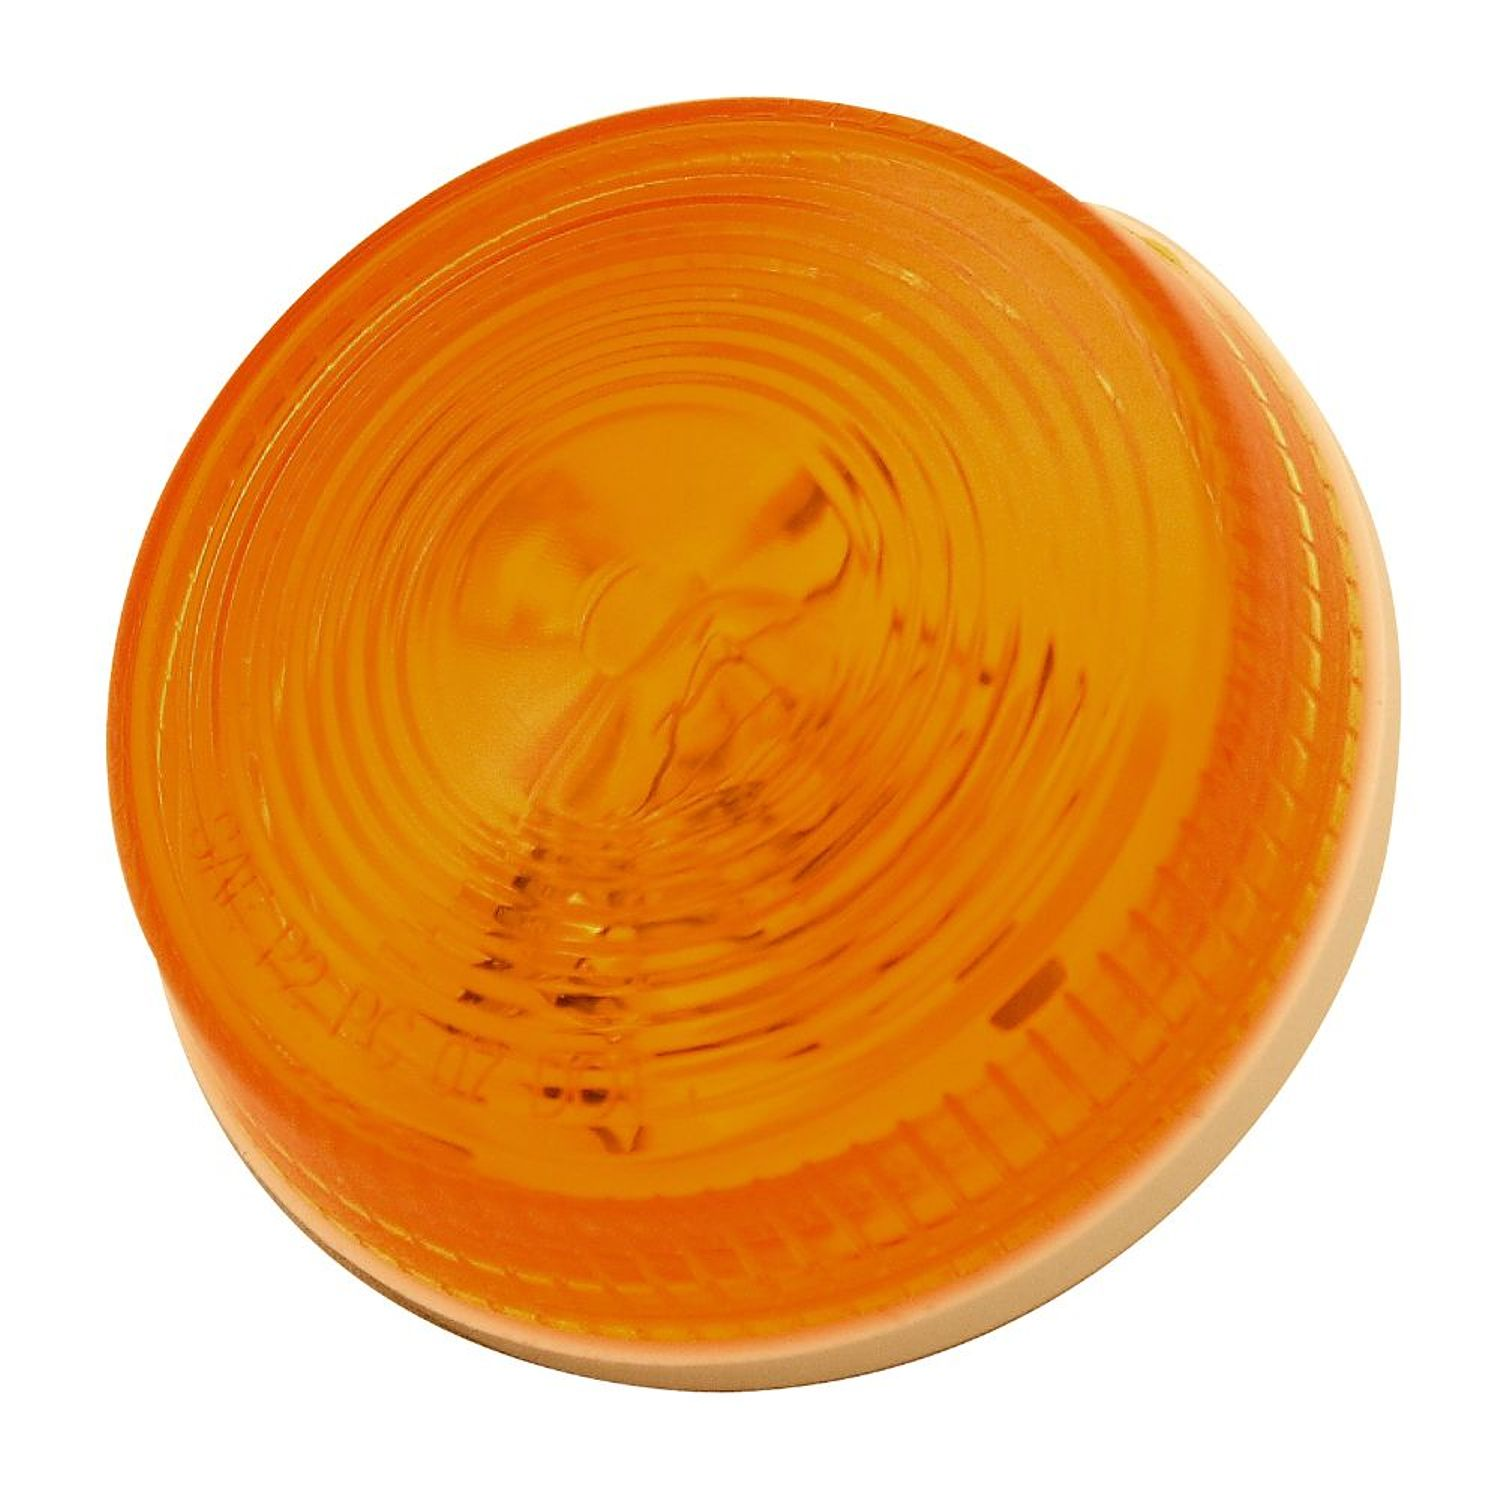 Pilot Automotive NV-5073A 12 Volt 2.5 inch Round Clearance Light-Amber Size: 2-1/2 x 1-1/16